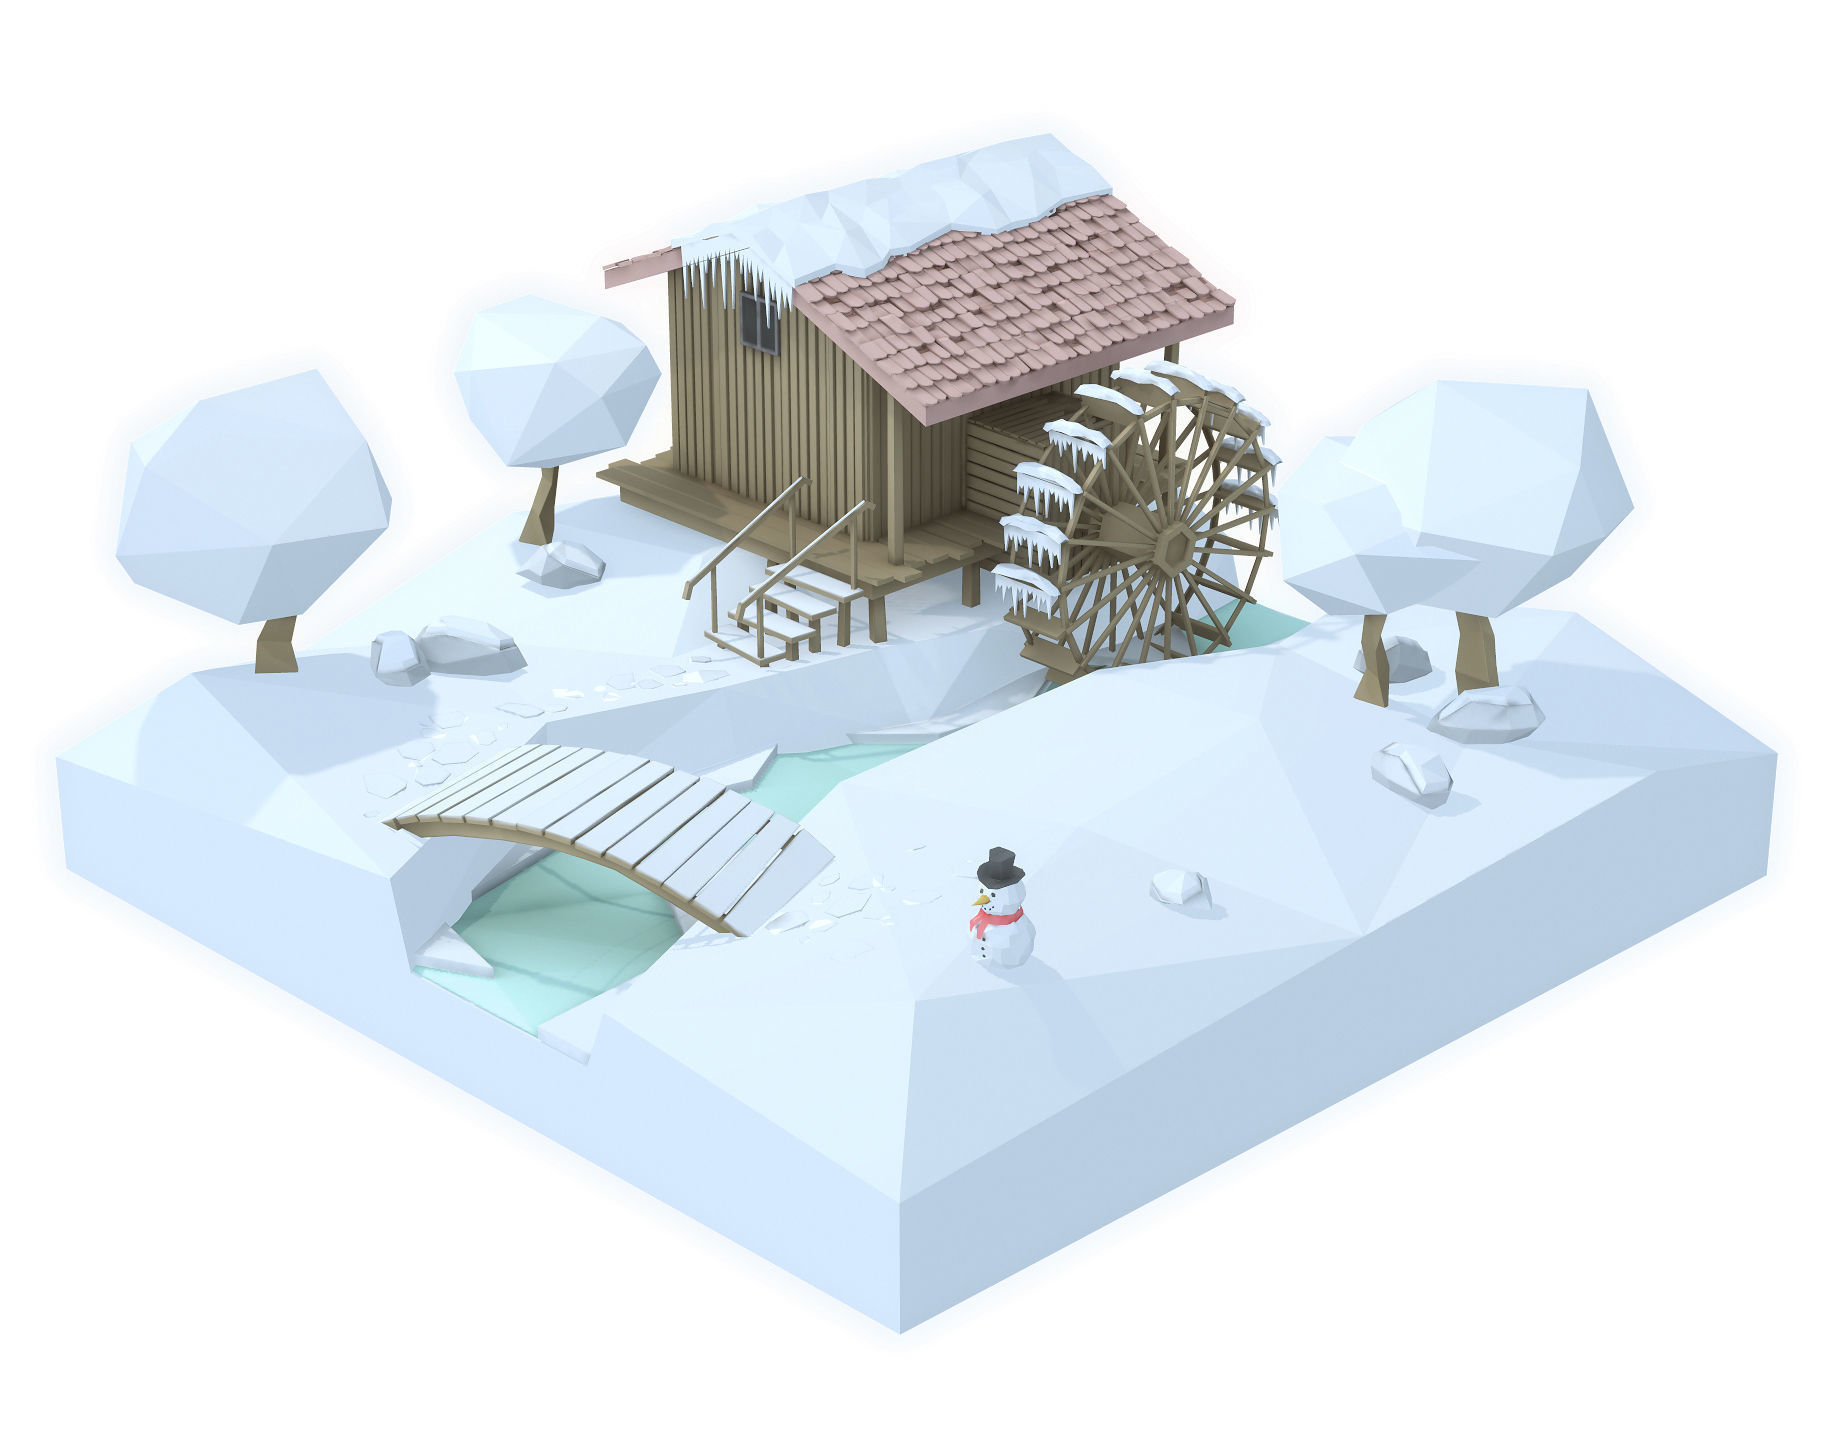 Watermill isometric landscape winter village low poly